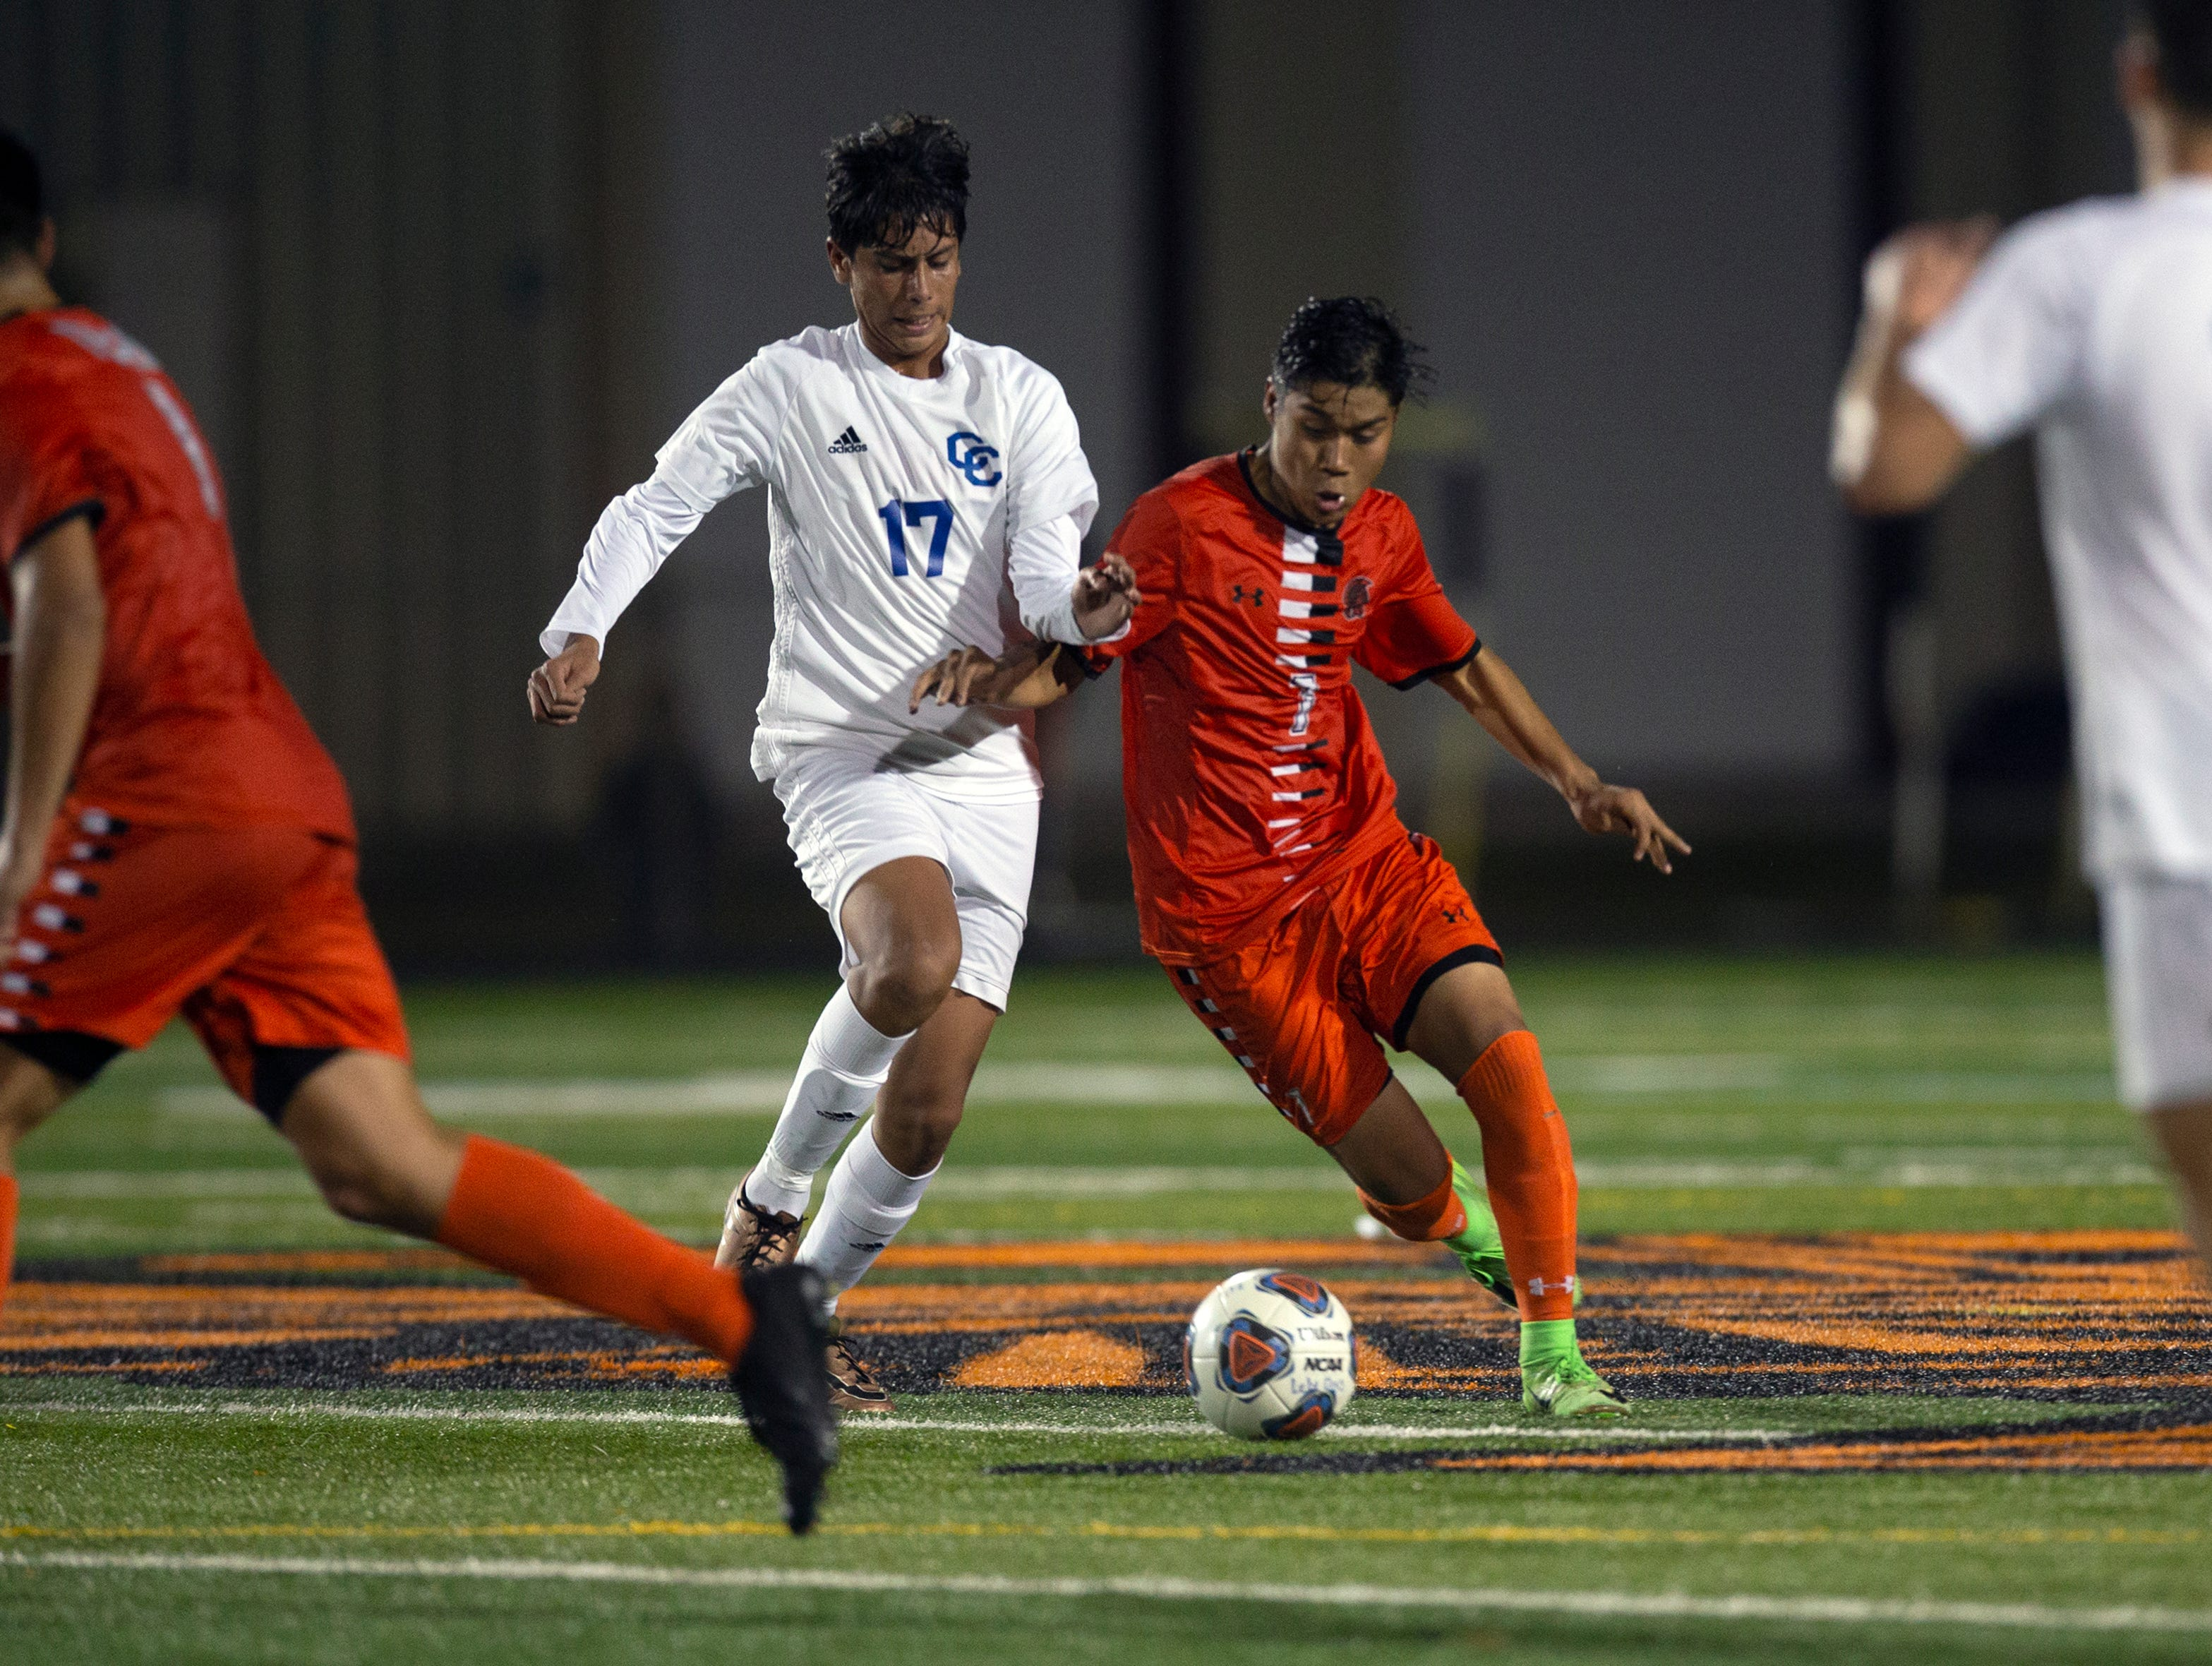 Cape Coral Adreil Gomez and Lely's Alan Garcia chase down the ball during their game, Wednesday, Feb. 6, 2019, at Lely High School.